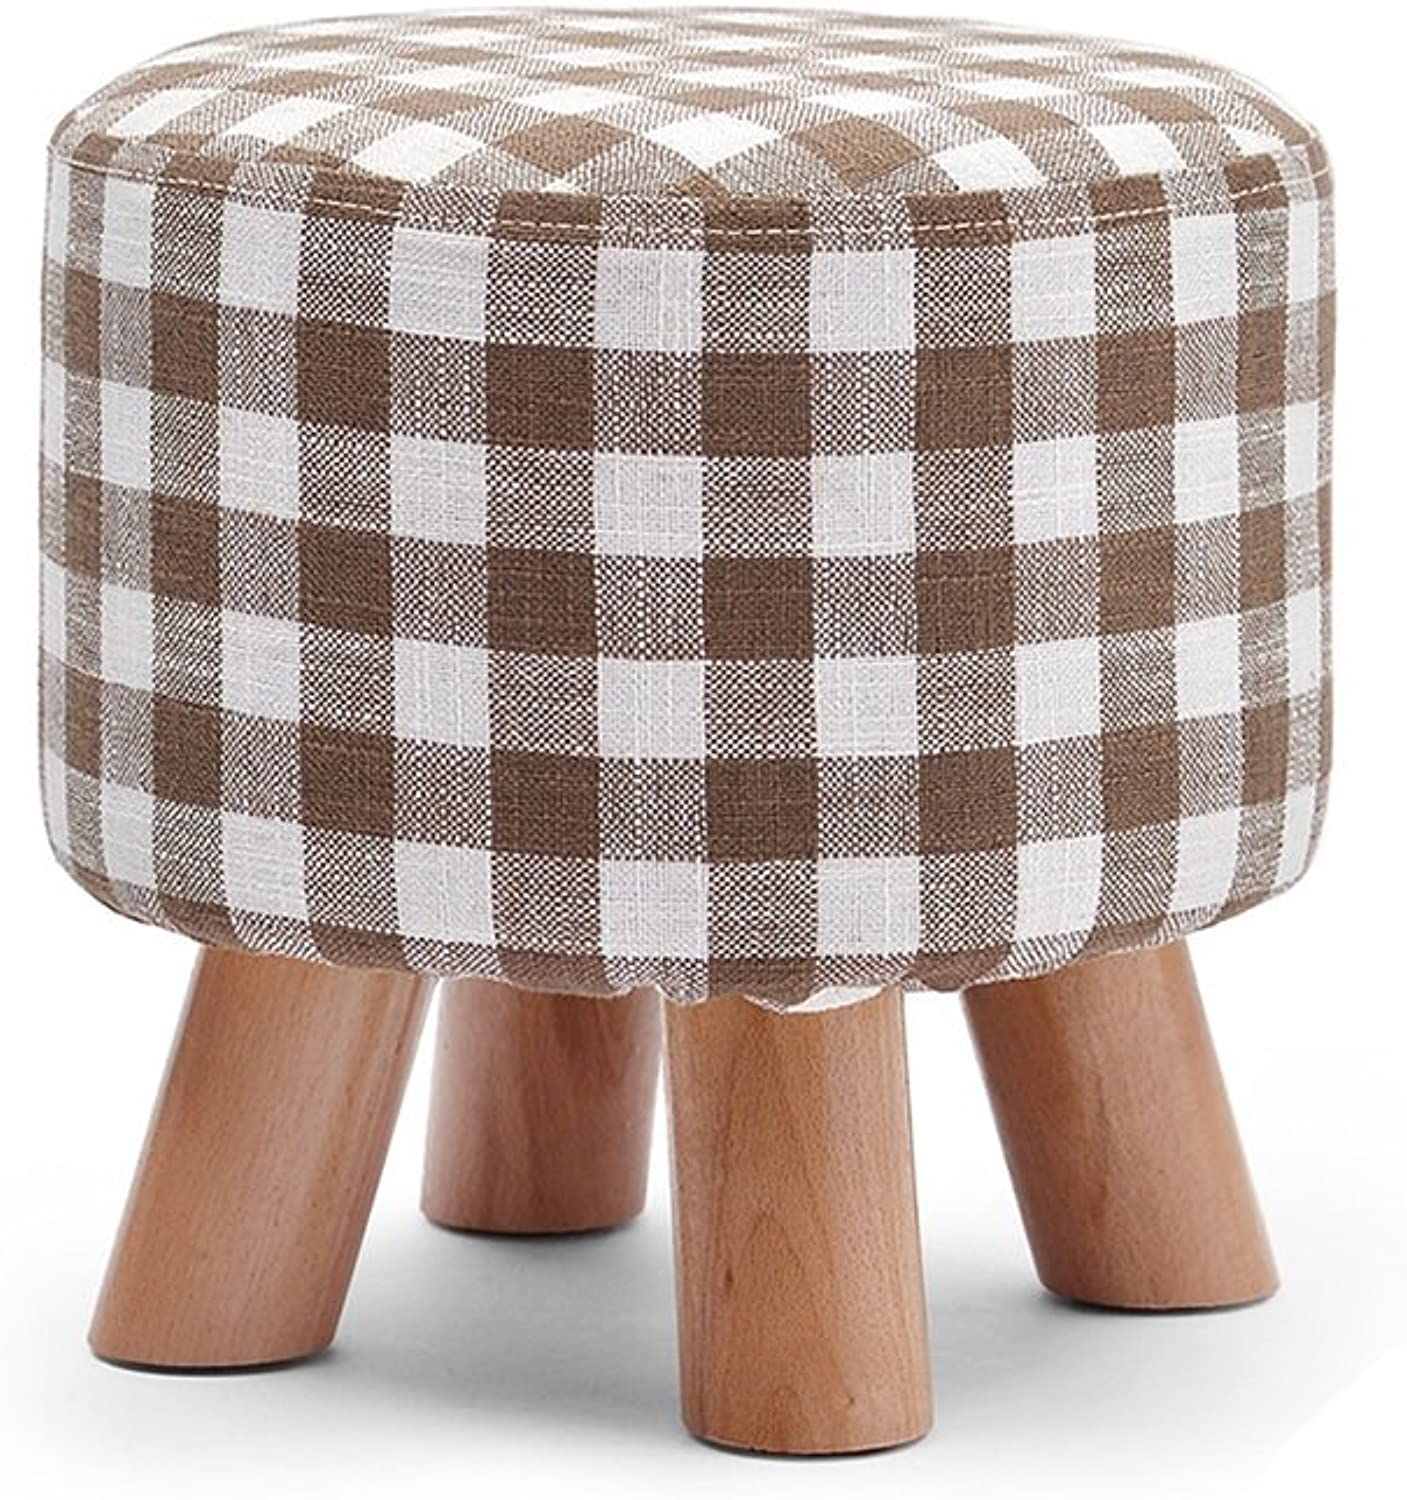 Stools Footstool Work Stool Beauty Roller Stool Bamboo Stool Solid Wood Linen Small Short Sofa Dressing Round Washable ZHANGQIANG (color   Brown, Size   4)